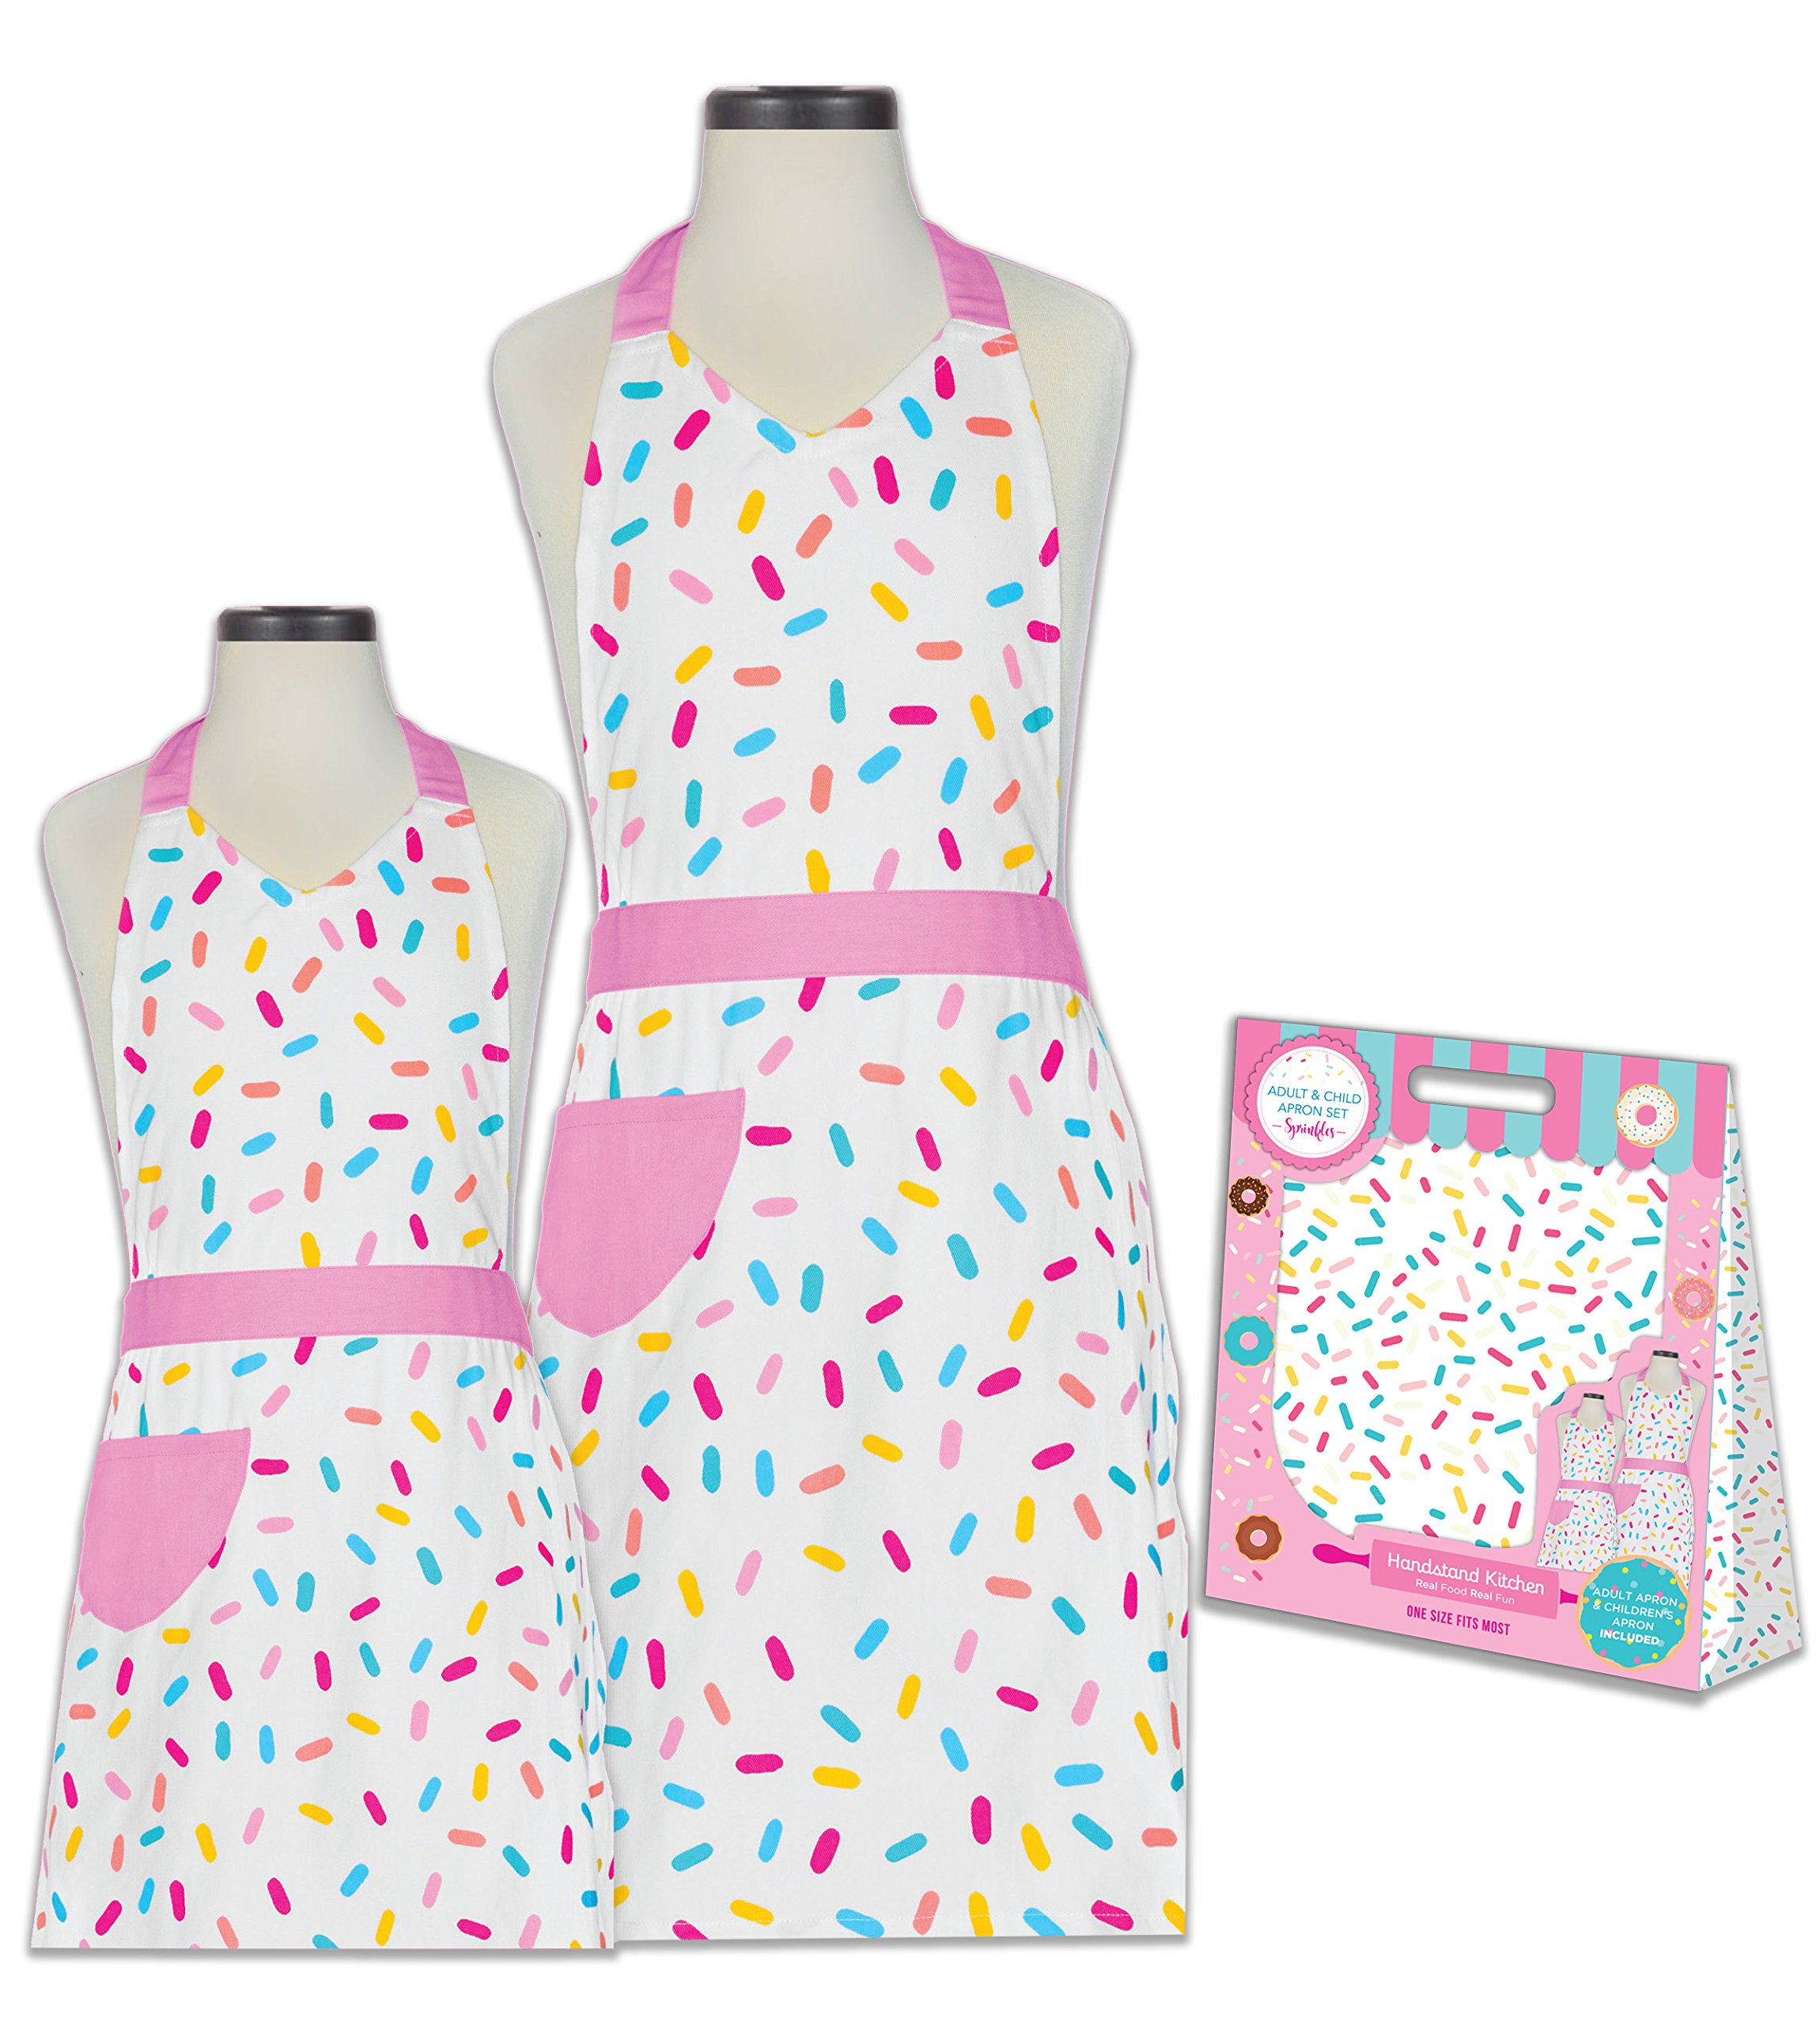 Handstand Kitchen Mother and Daughter Sprinkles 100% Cotton Apron Gift Set by Handstand Kitchen (Image #1)